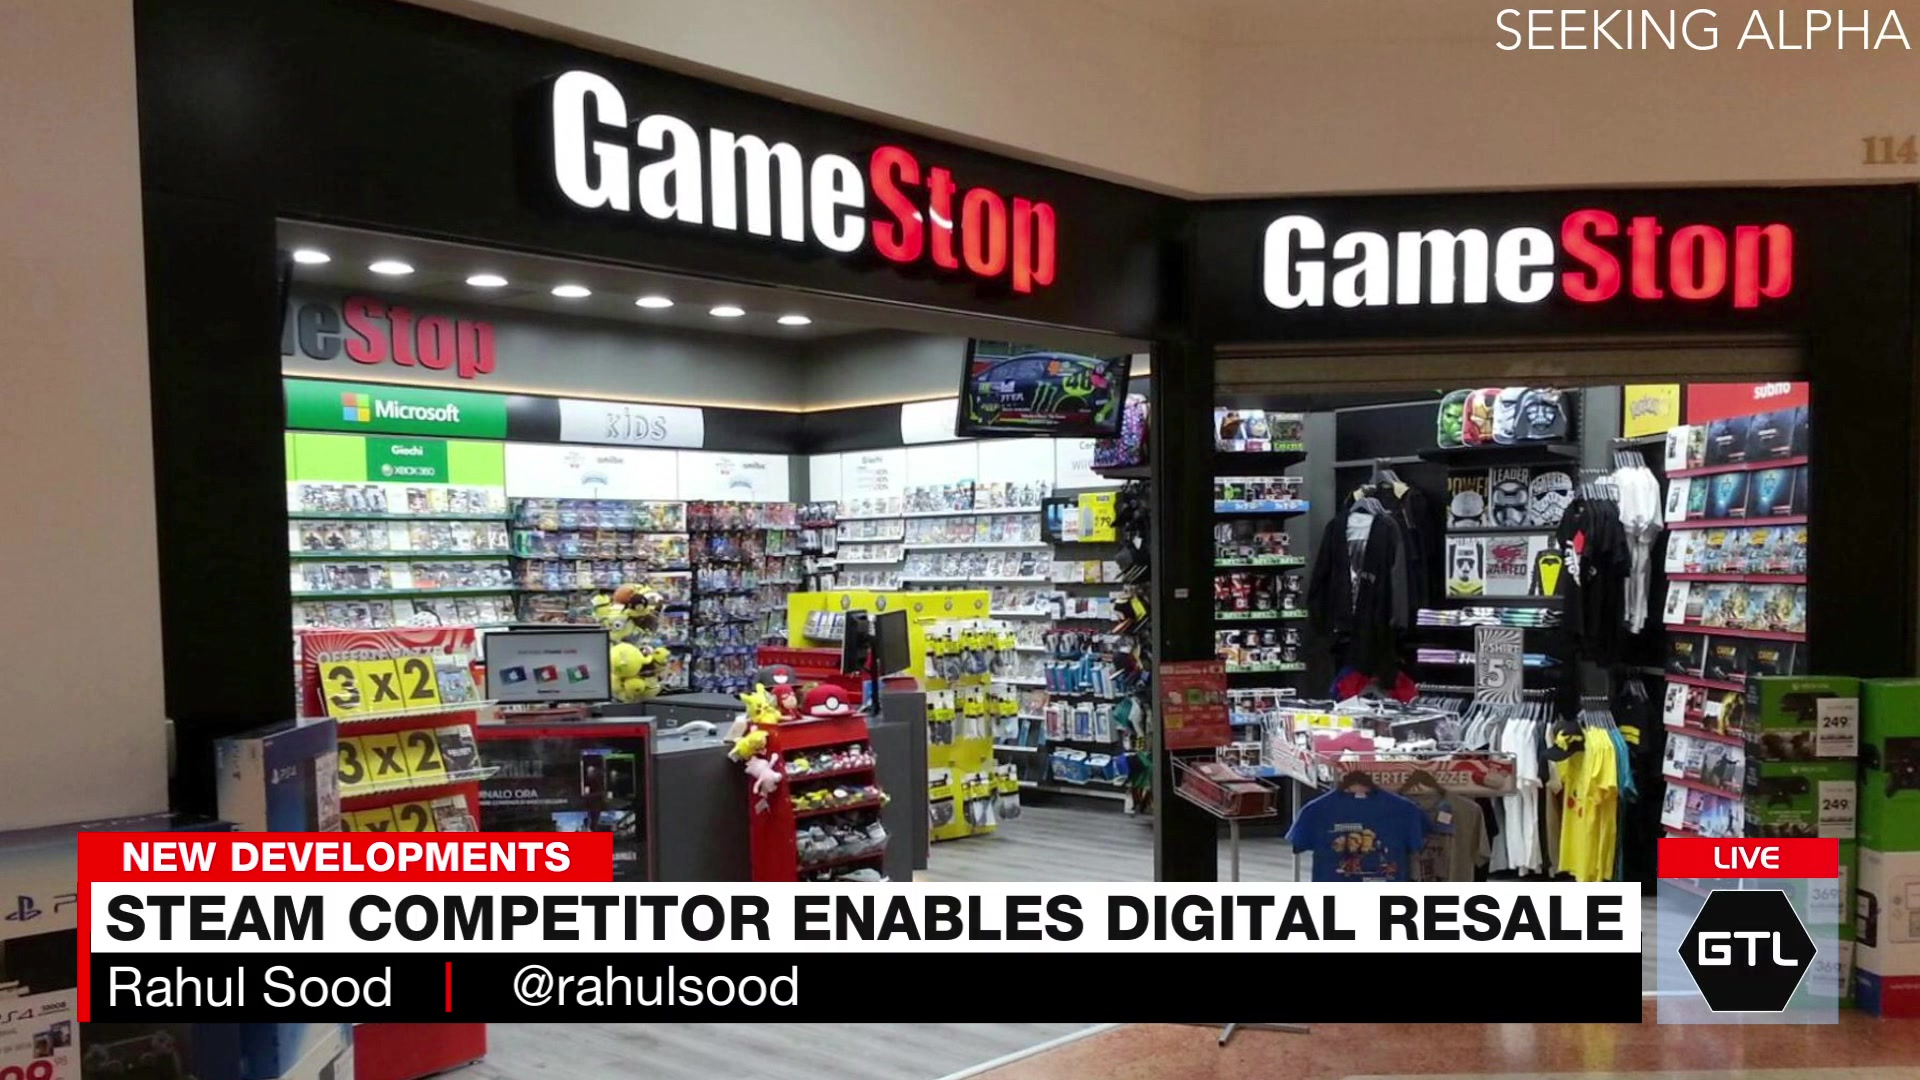 New Tech Allows Gamers to Re-sell Digital Games